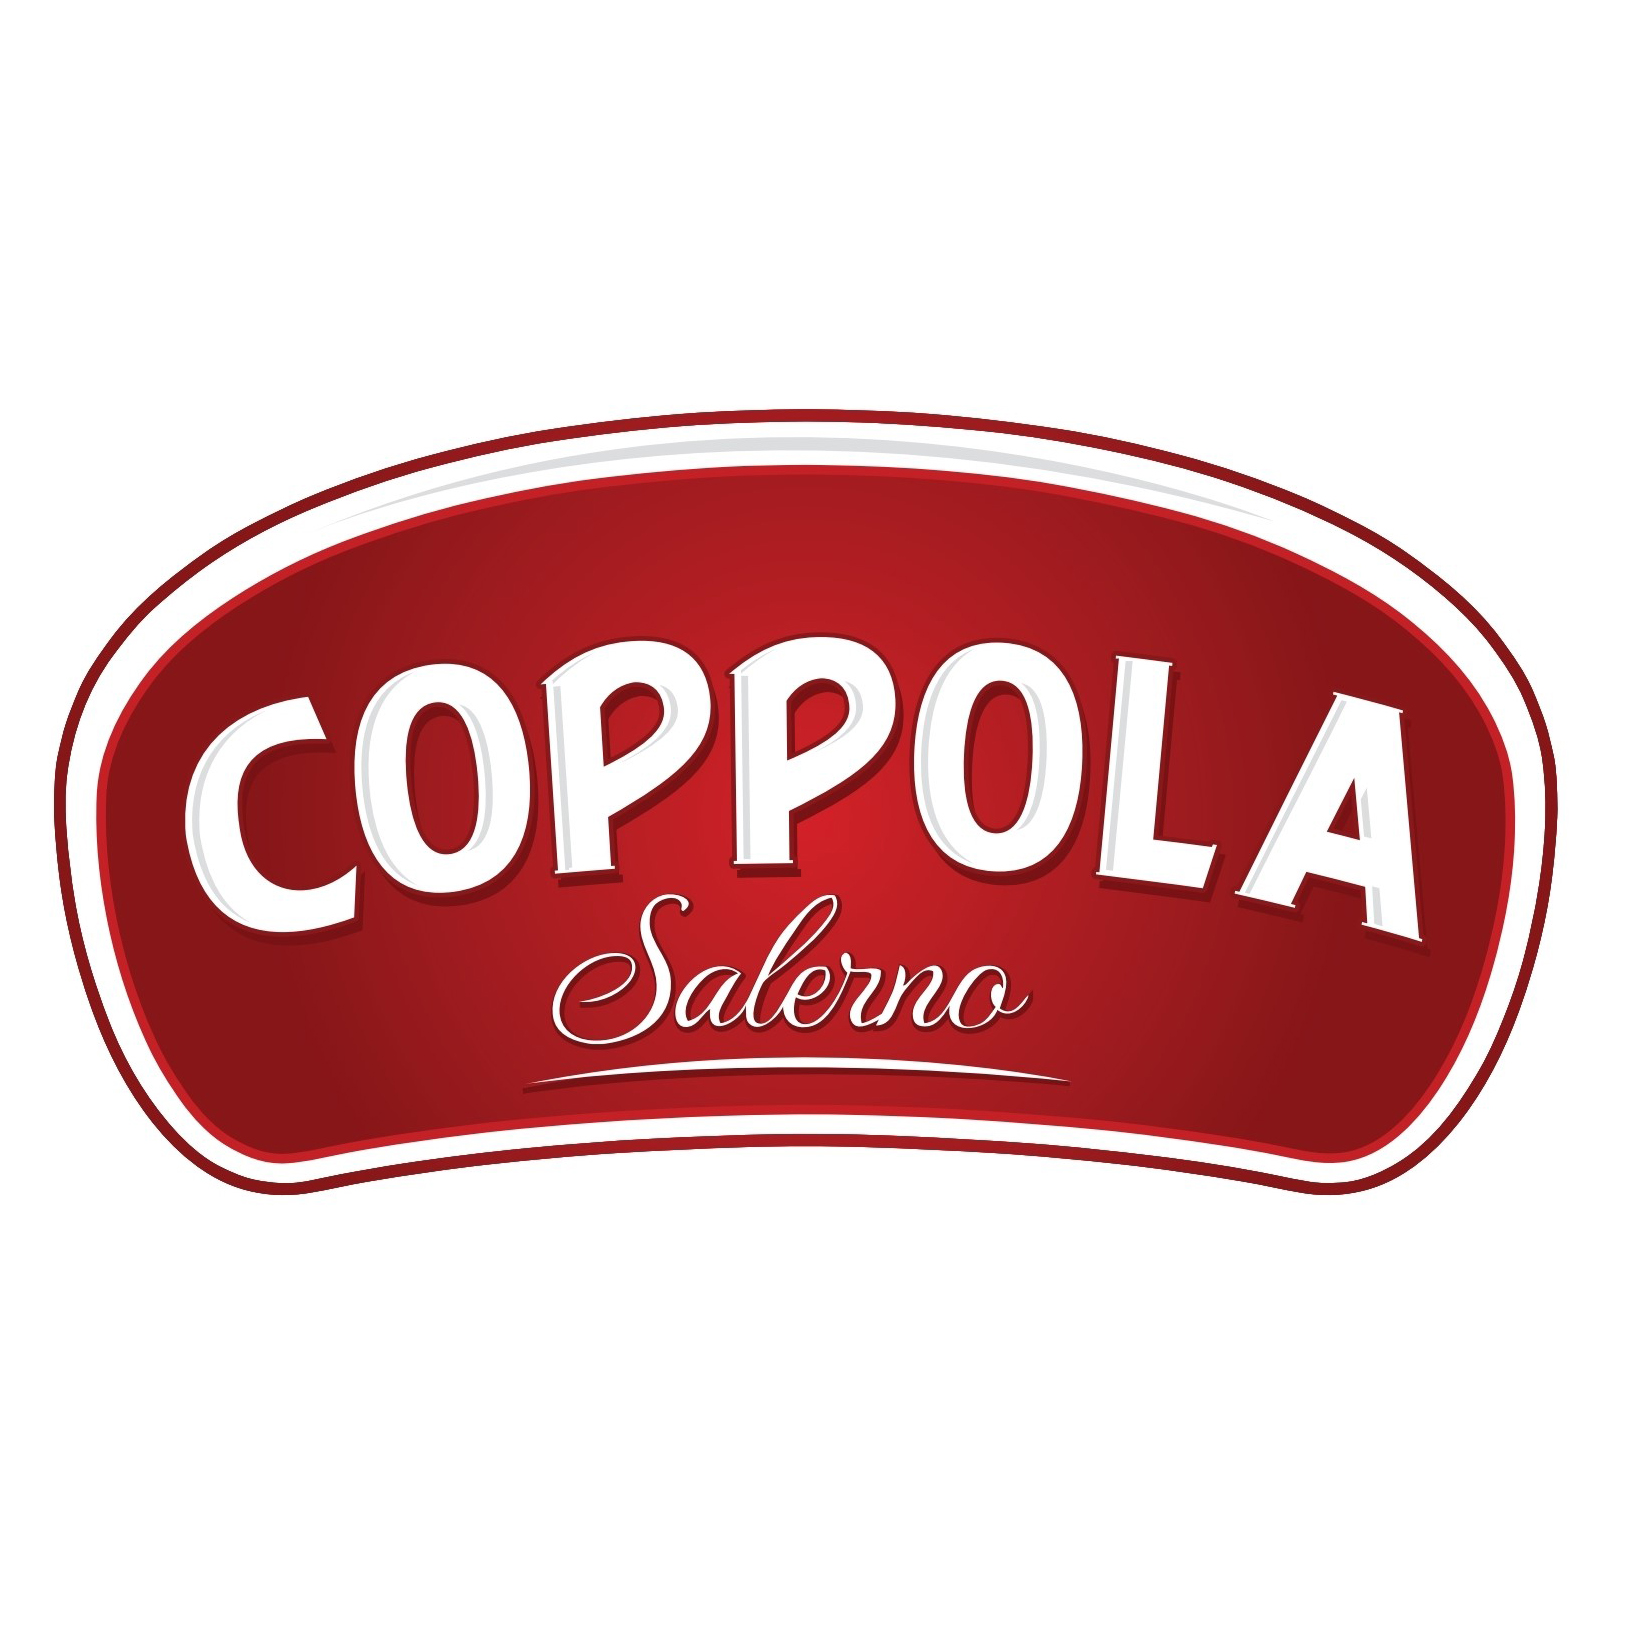 Coppola Passata, Sieved tomaoes, Italy, condiment, sauce, ready to eat, Canned vegetables, Coppola Foods